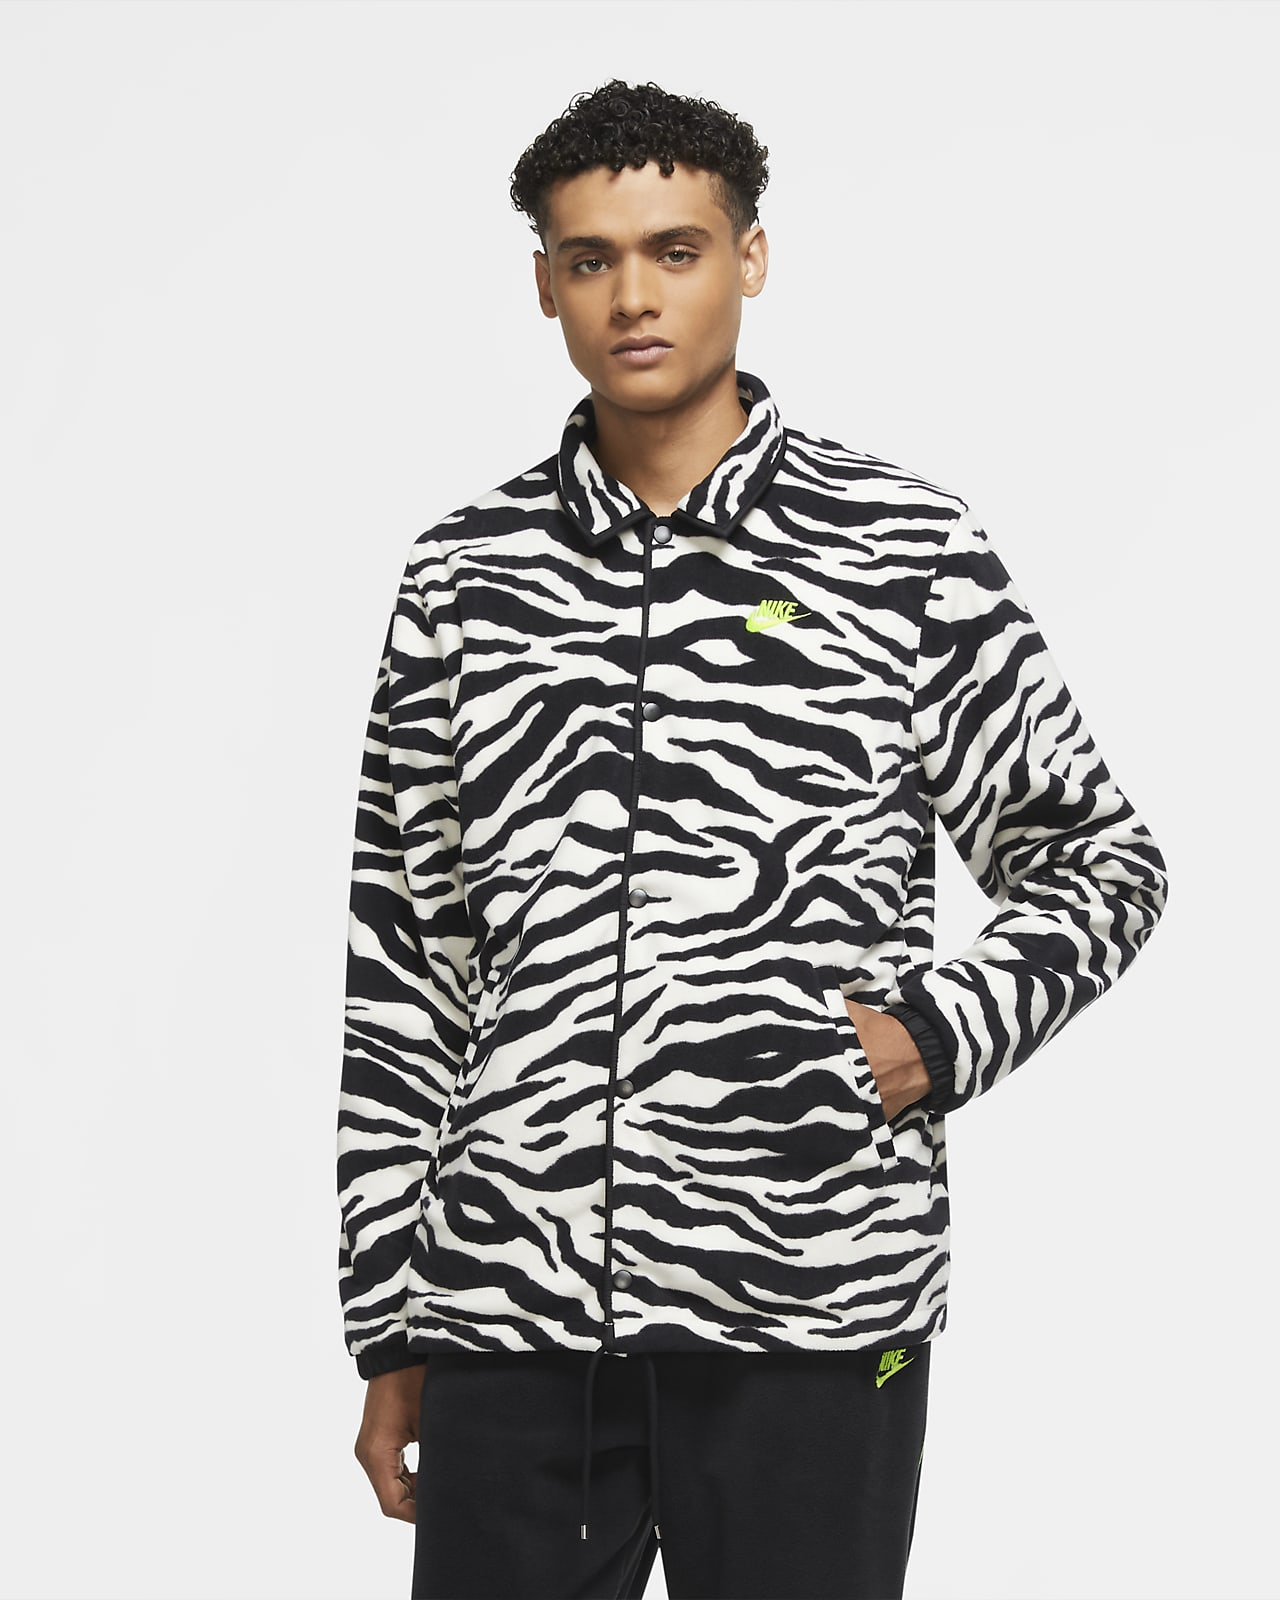 Nike Sportswear City Edition Men's Coaches Jacket